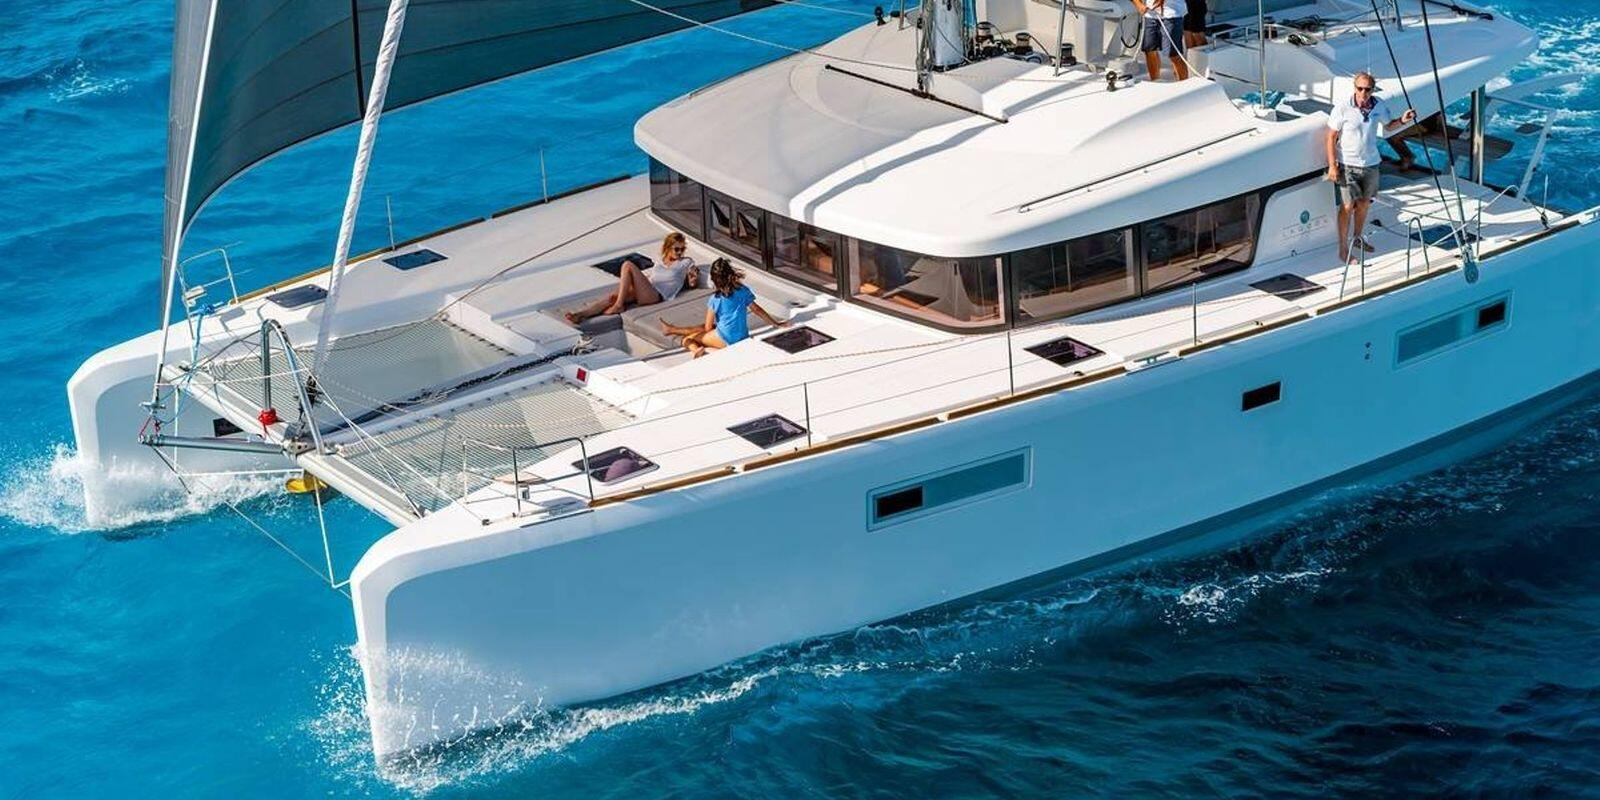 Spanish Summer: To the Balearic Islands aboard a spacious Lagoon 42 Catamaran